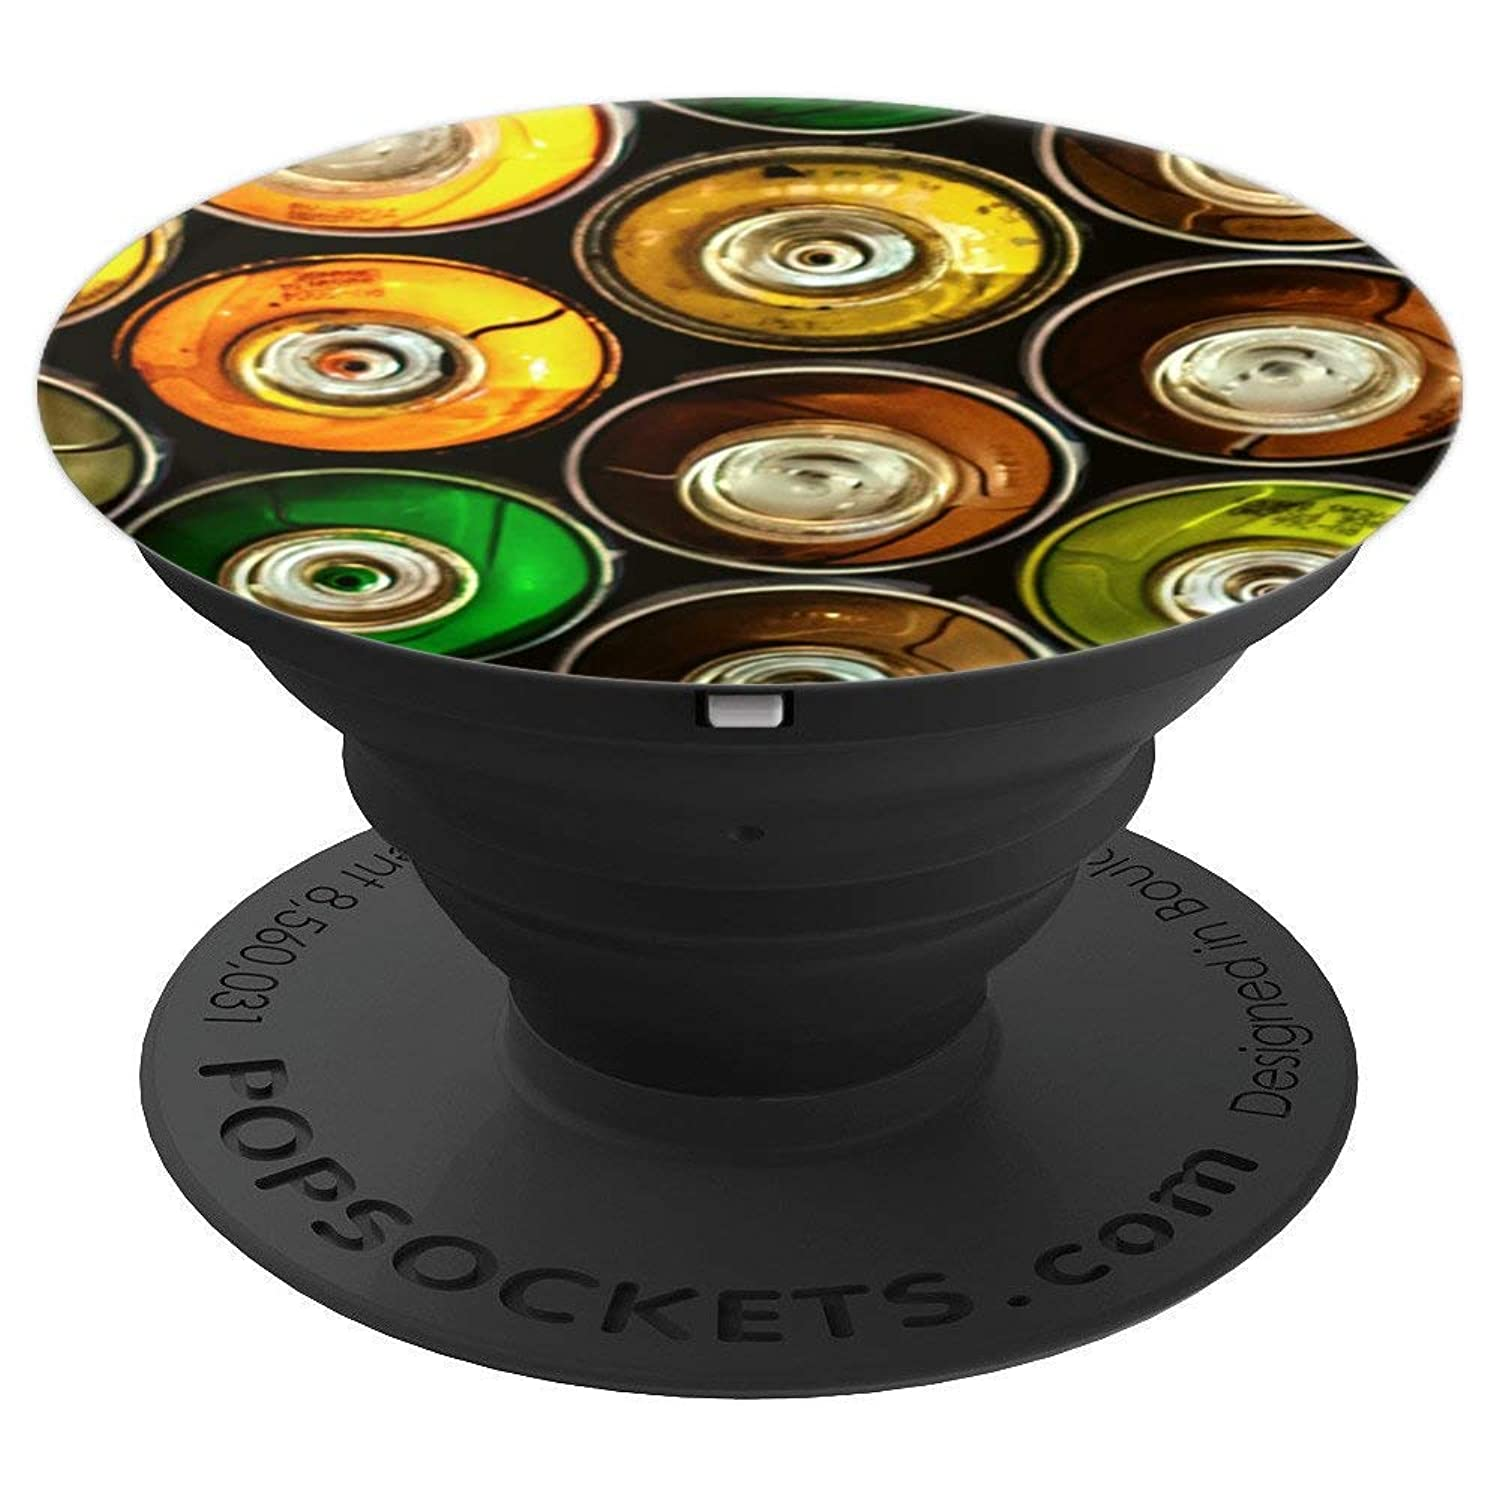 Graffiti Spray Paint Pattern - PopSockets Grip and Stand for Phones and Tablets